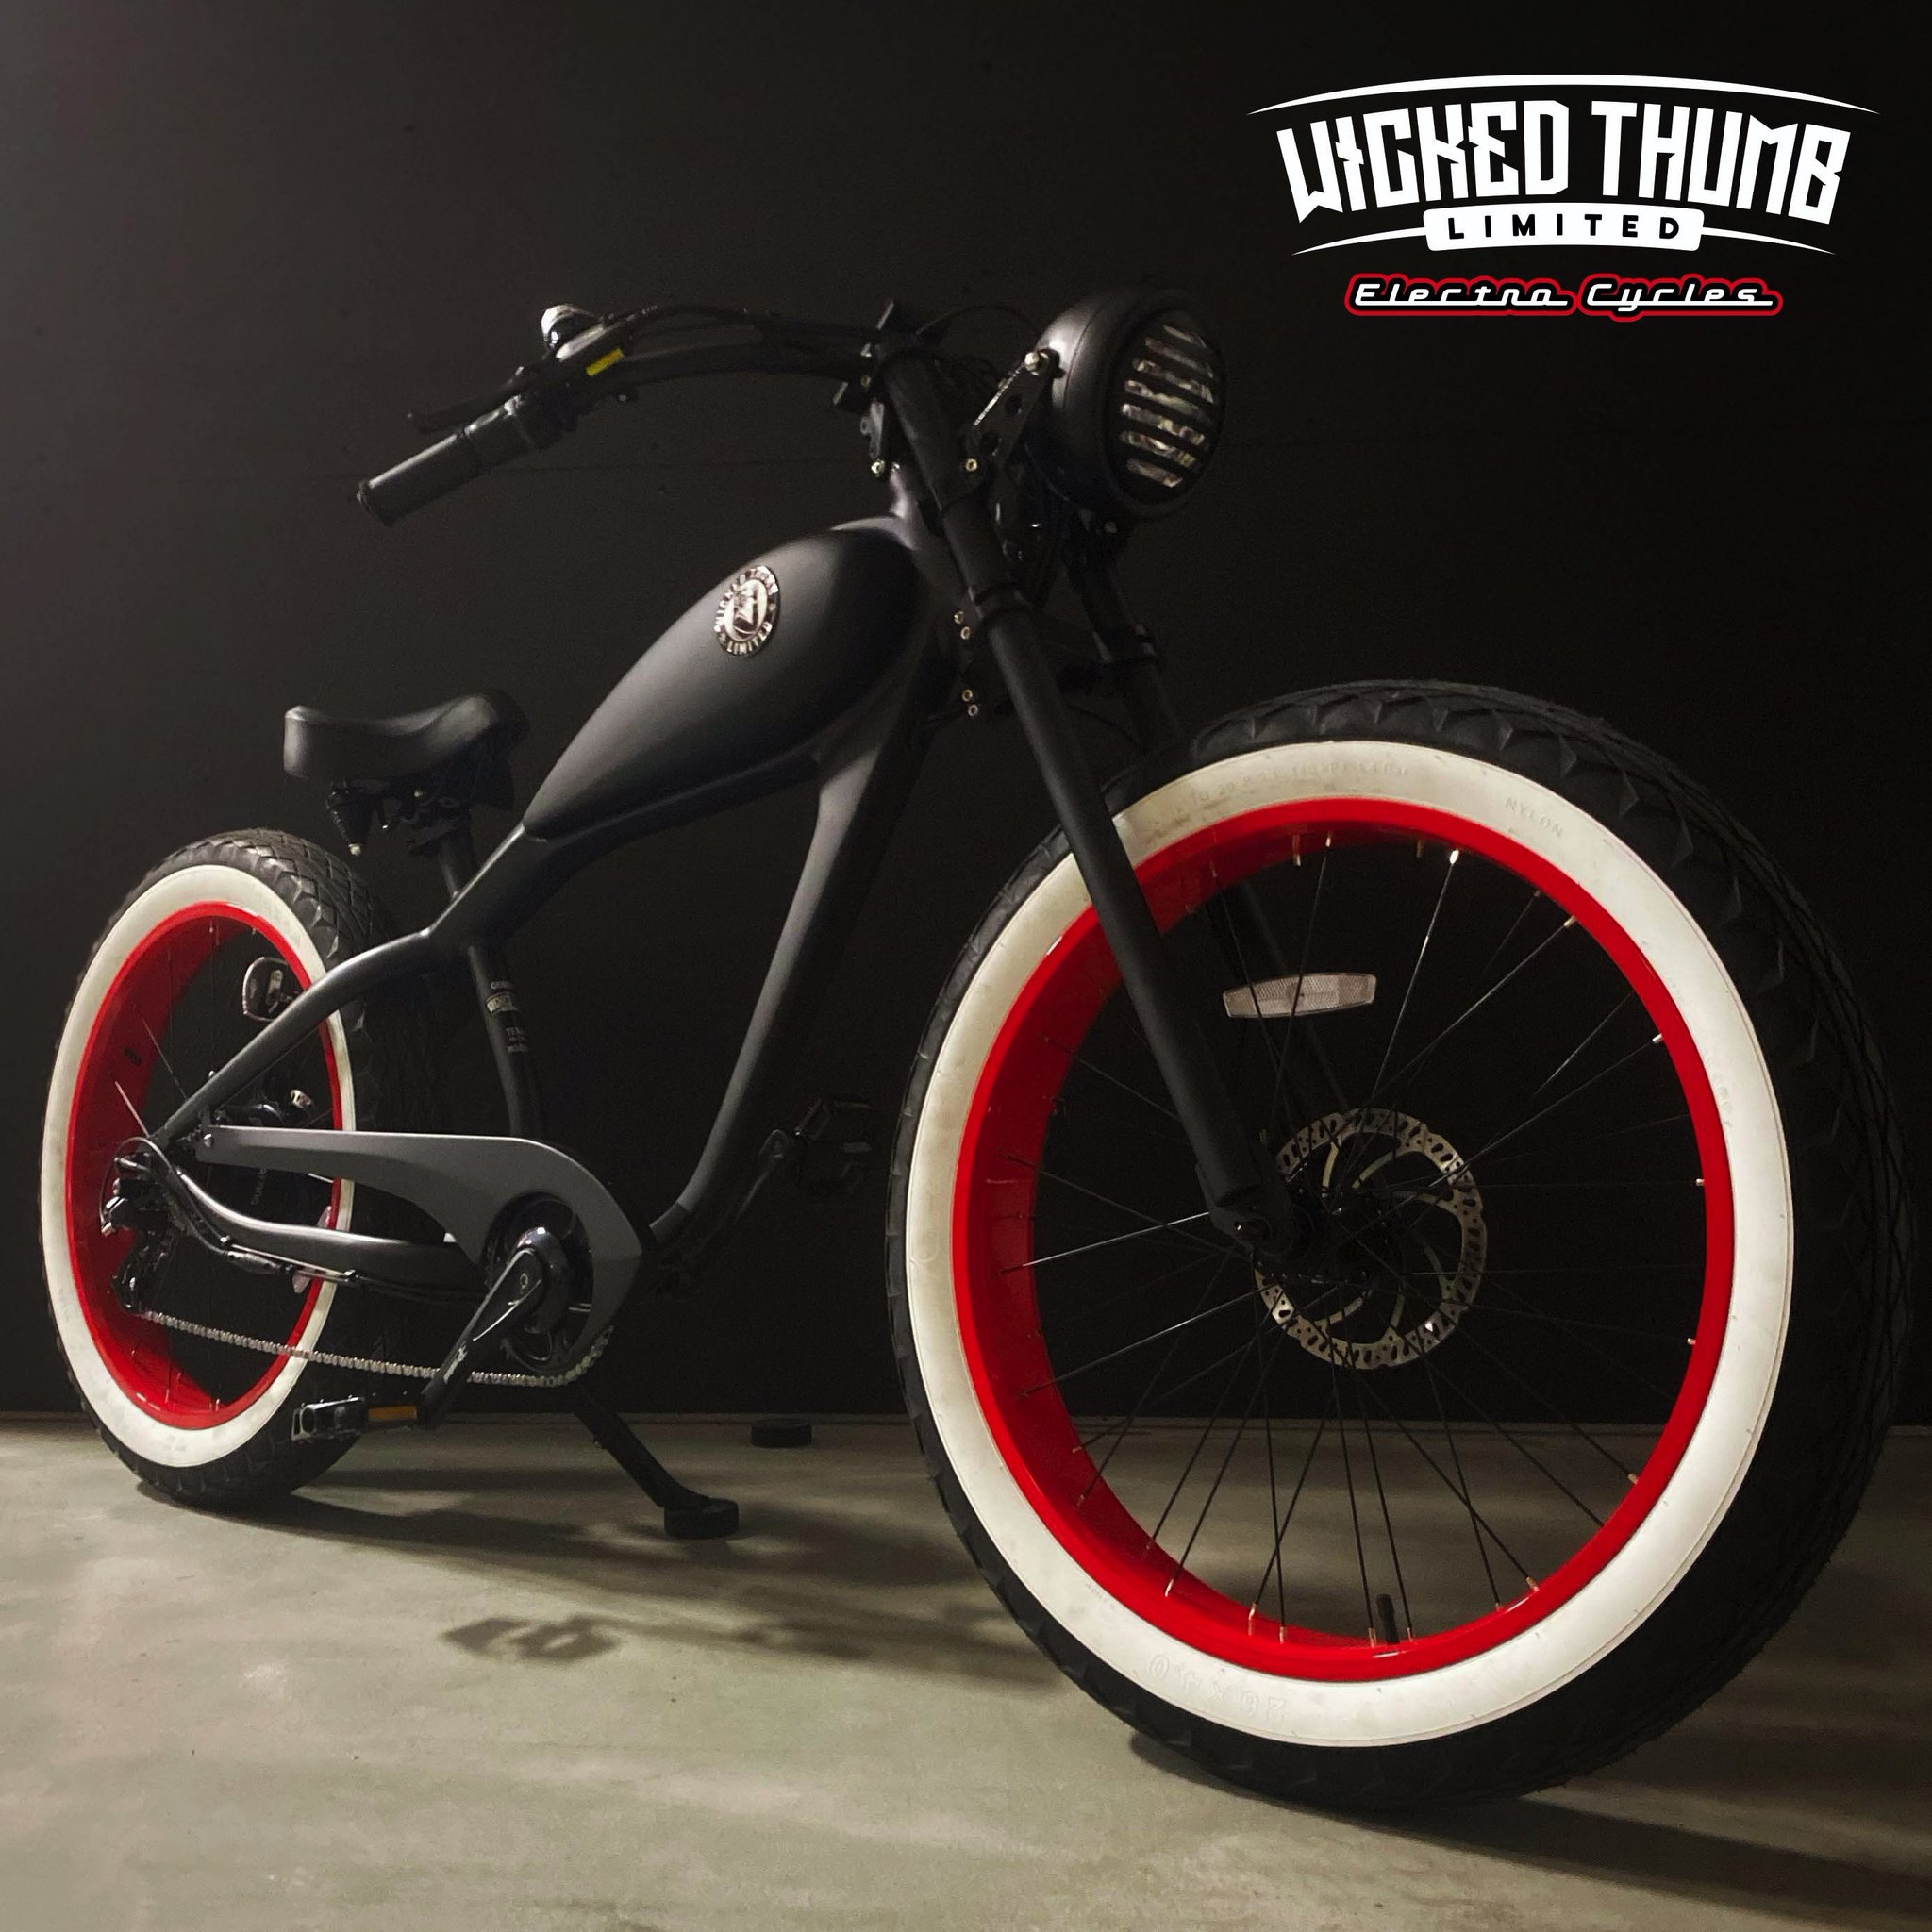 Wicked Thumb Electro Cycles